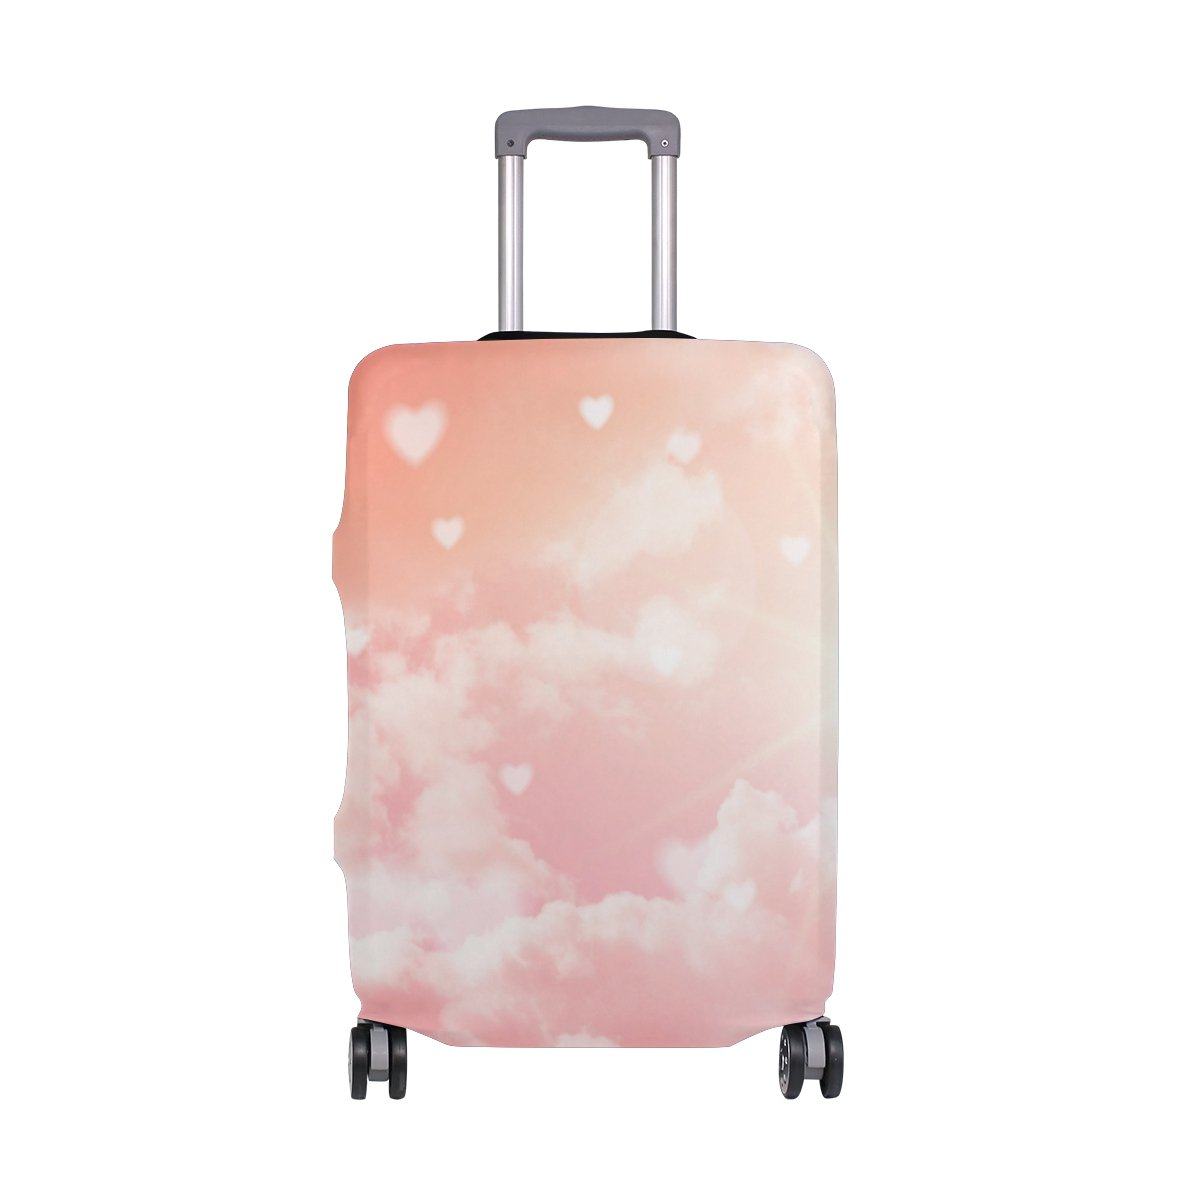 ALAZA Hearts Clouds Valentine's Day Wedding Luggage Cover Fits 24-26 Inch Suitcase Spandex Travel Protector M